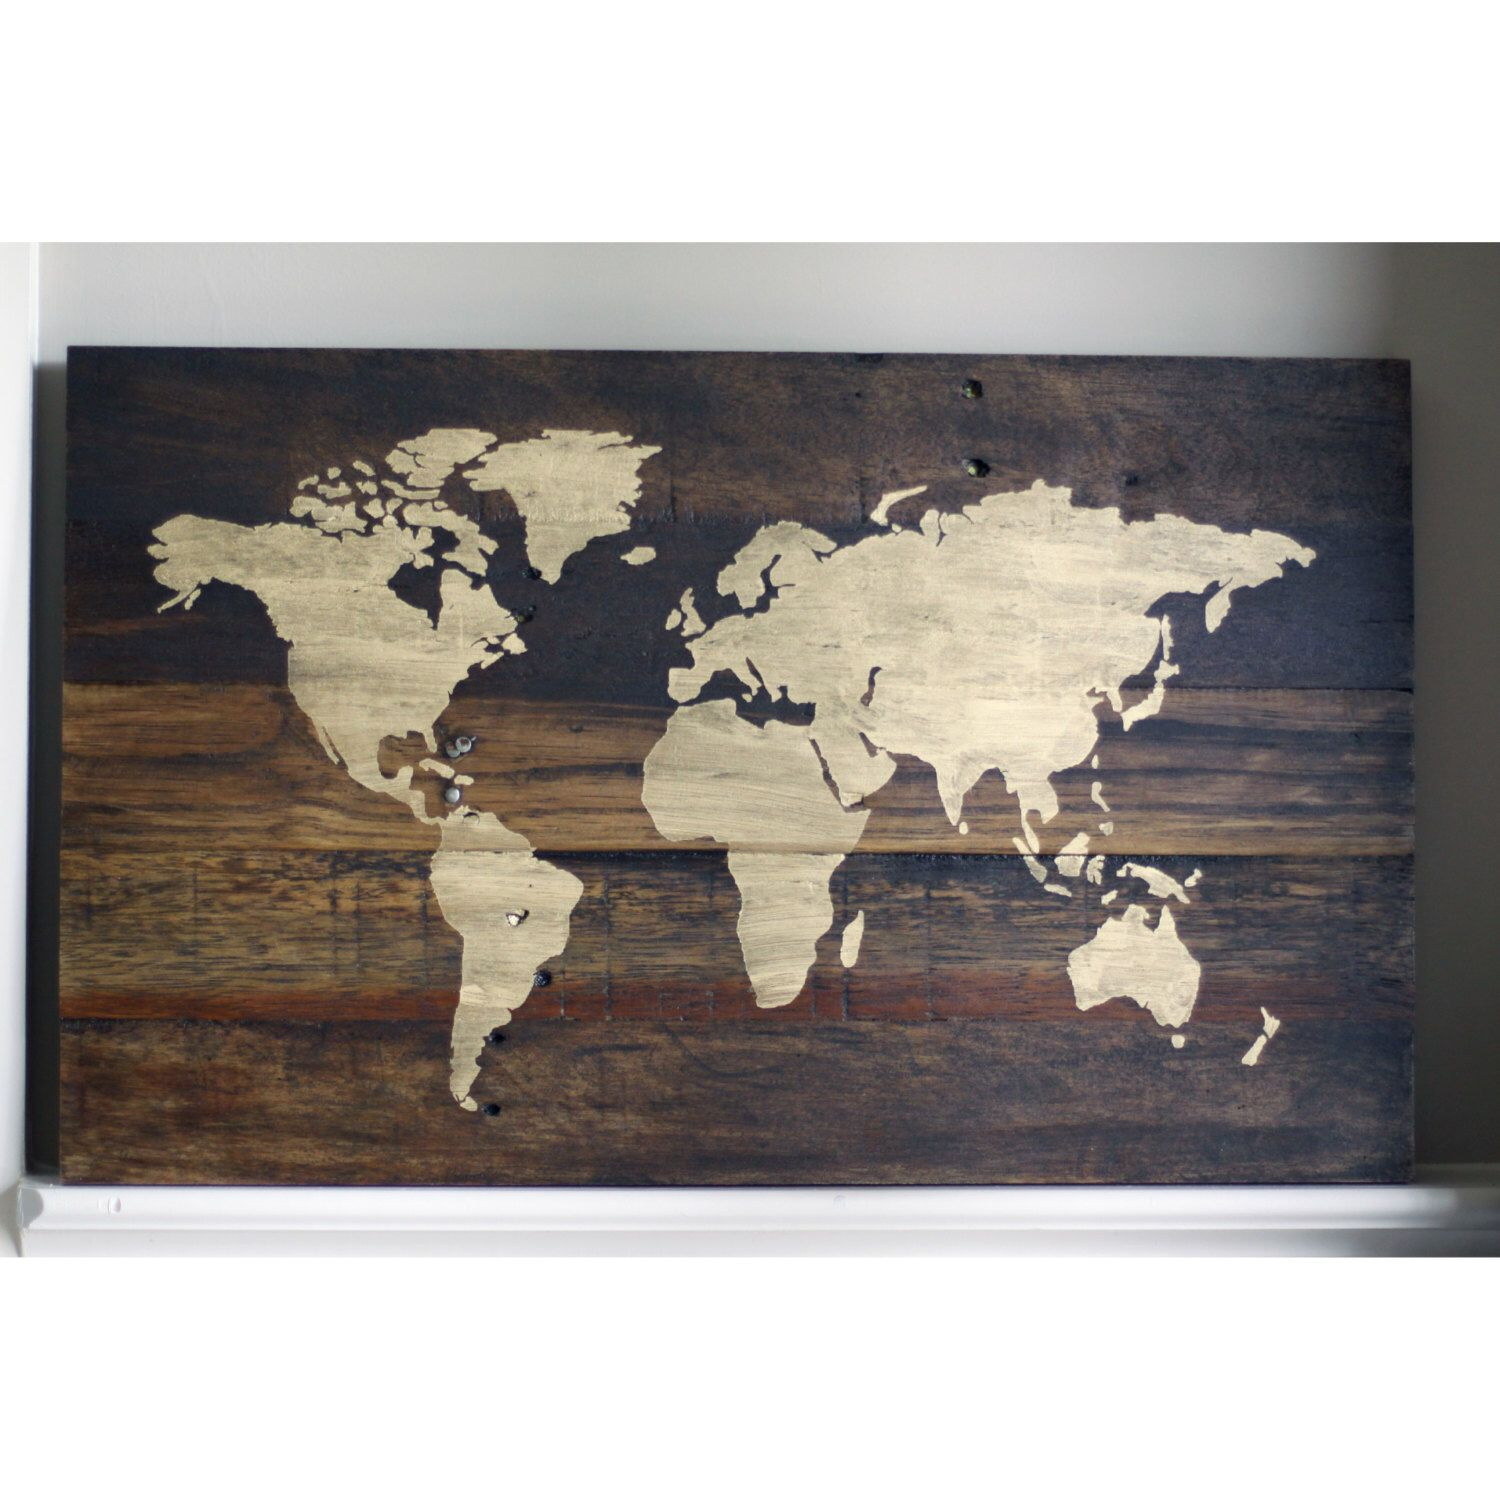 Rustic world map wood sign with upgrade by hammerandlaceinc on etsy rustic world map wood sign with upgrade by hammerandlaceinc on etsy httpswww gumiabroncs Gallery